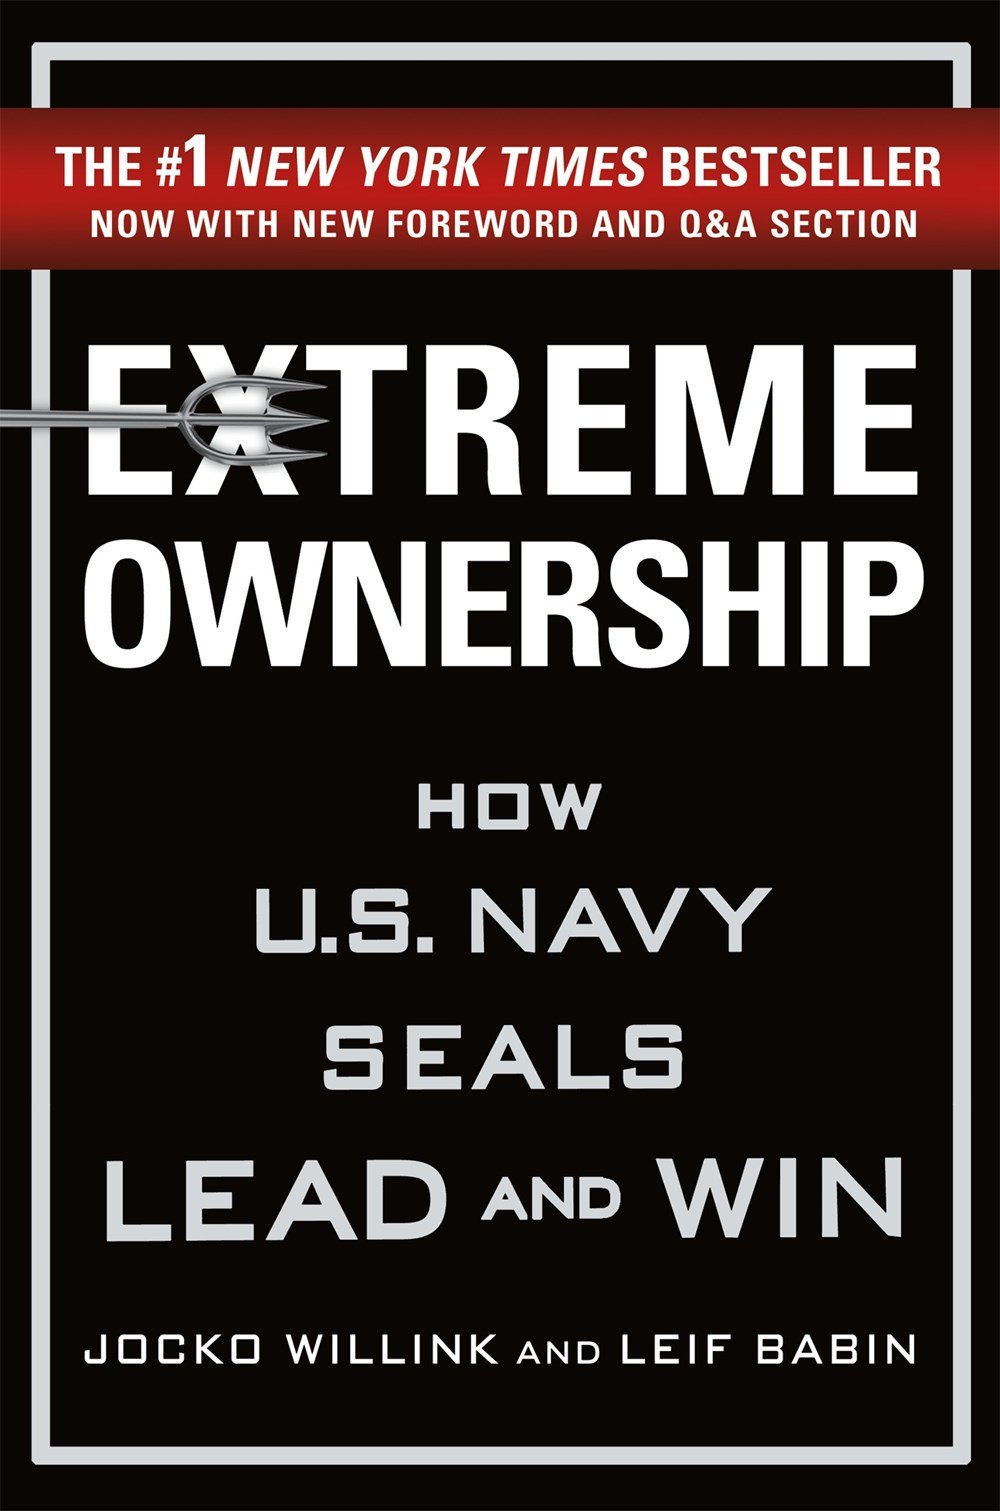 EXTREME OWNERSHIP - By: Jocko Willink & Leif Babin